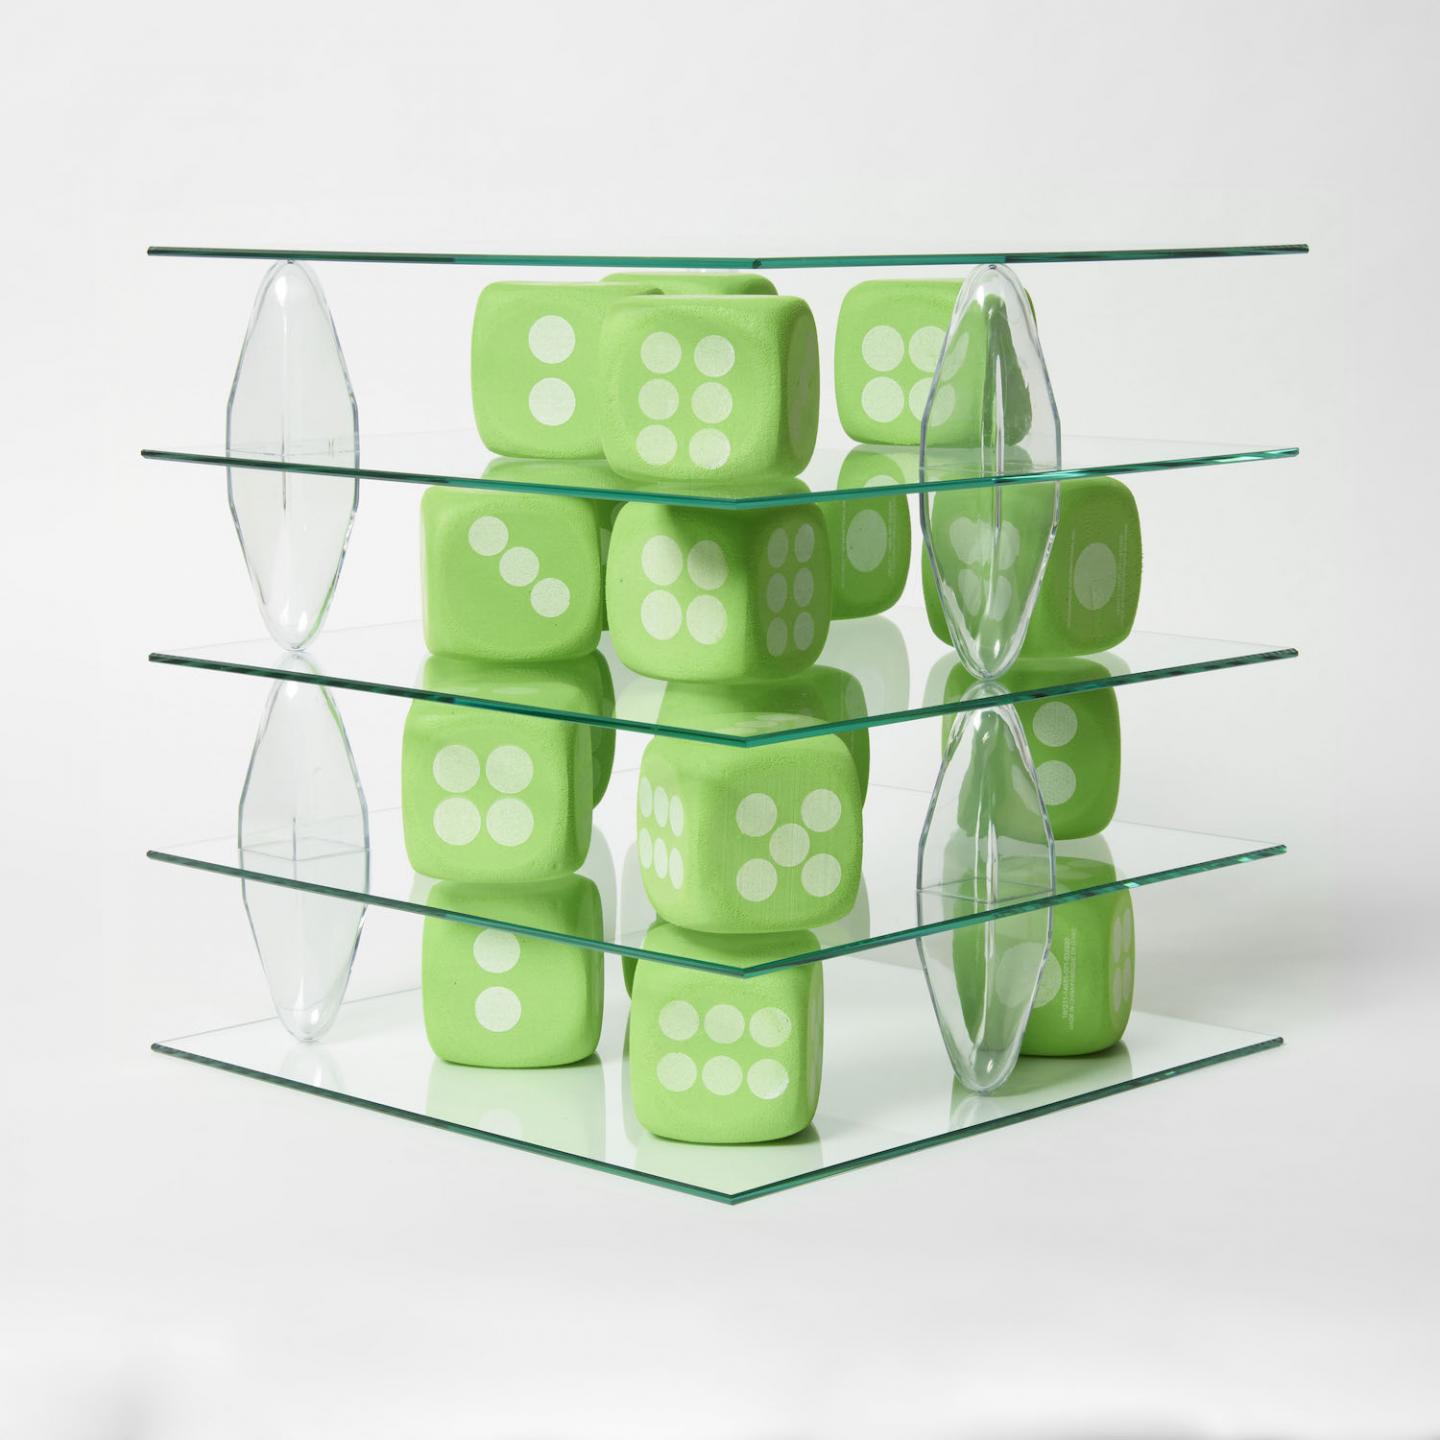 Patrick Jackson, Shelving Unite (Dice), 2020, .Courtesy: the artist and François Ghebaly, Los Angeles